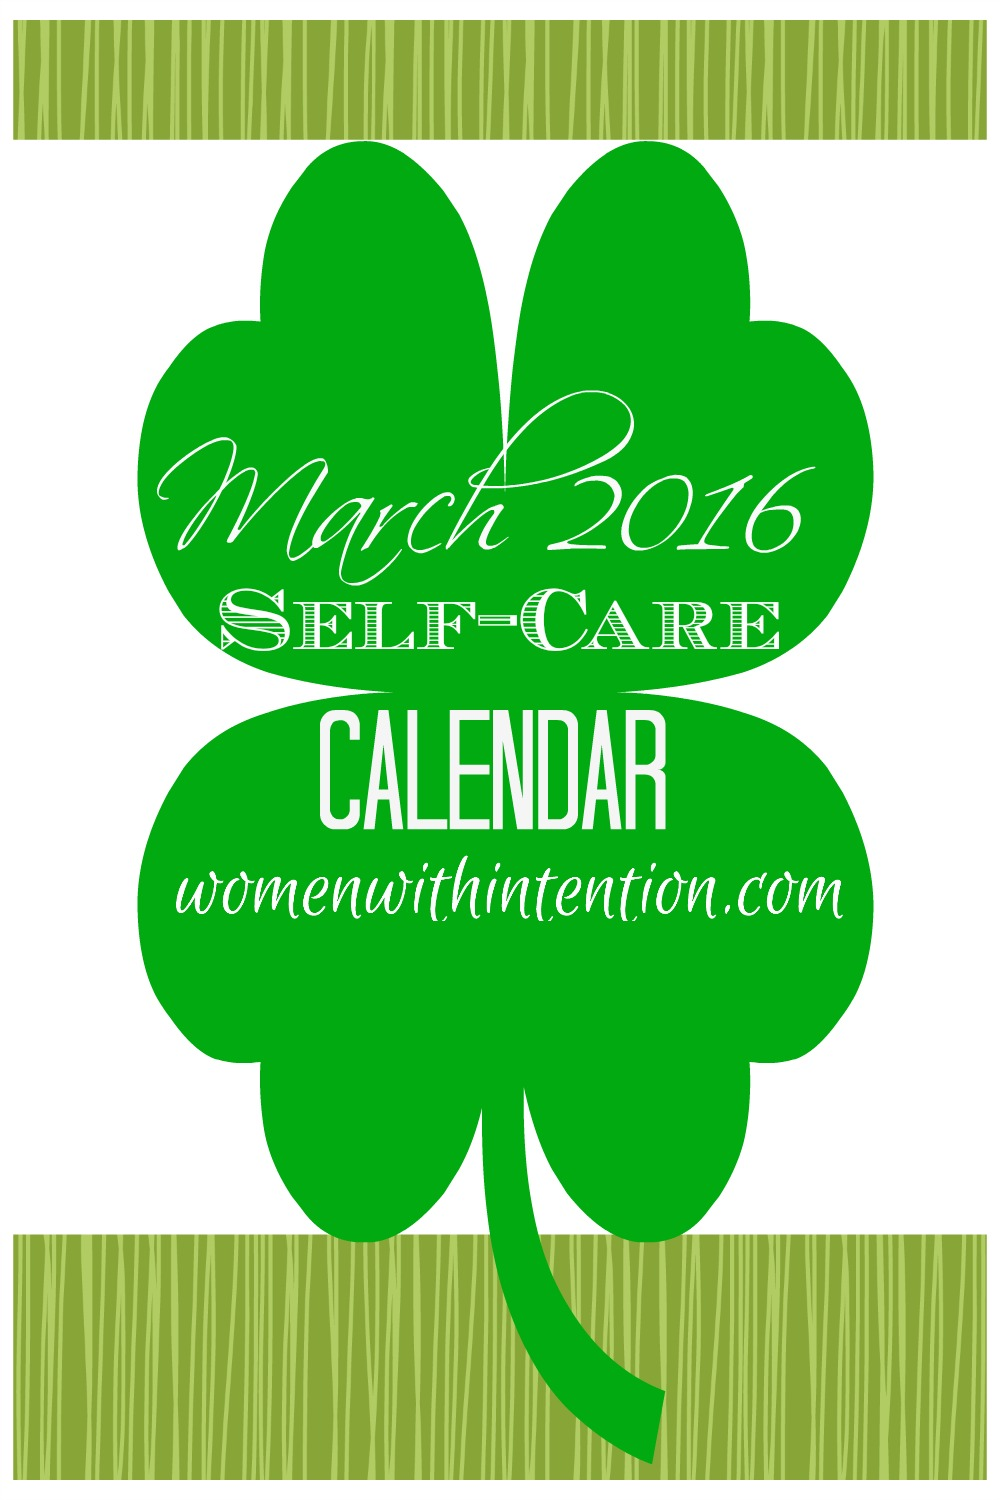 Self Made Calendar 2016 : March self care calendar women with intention